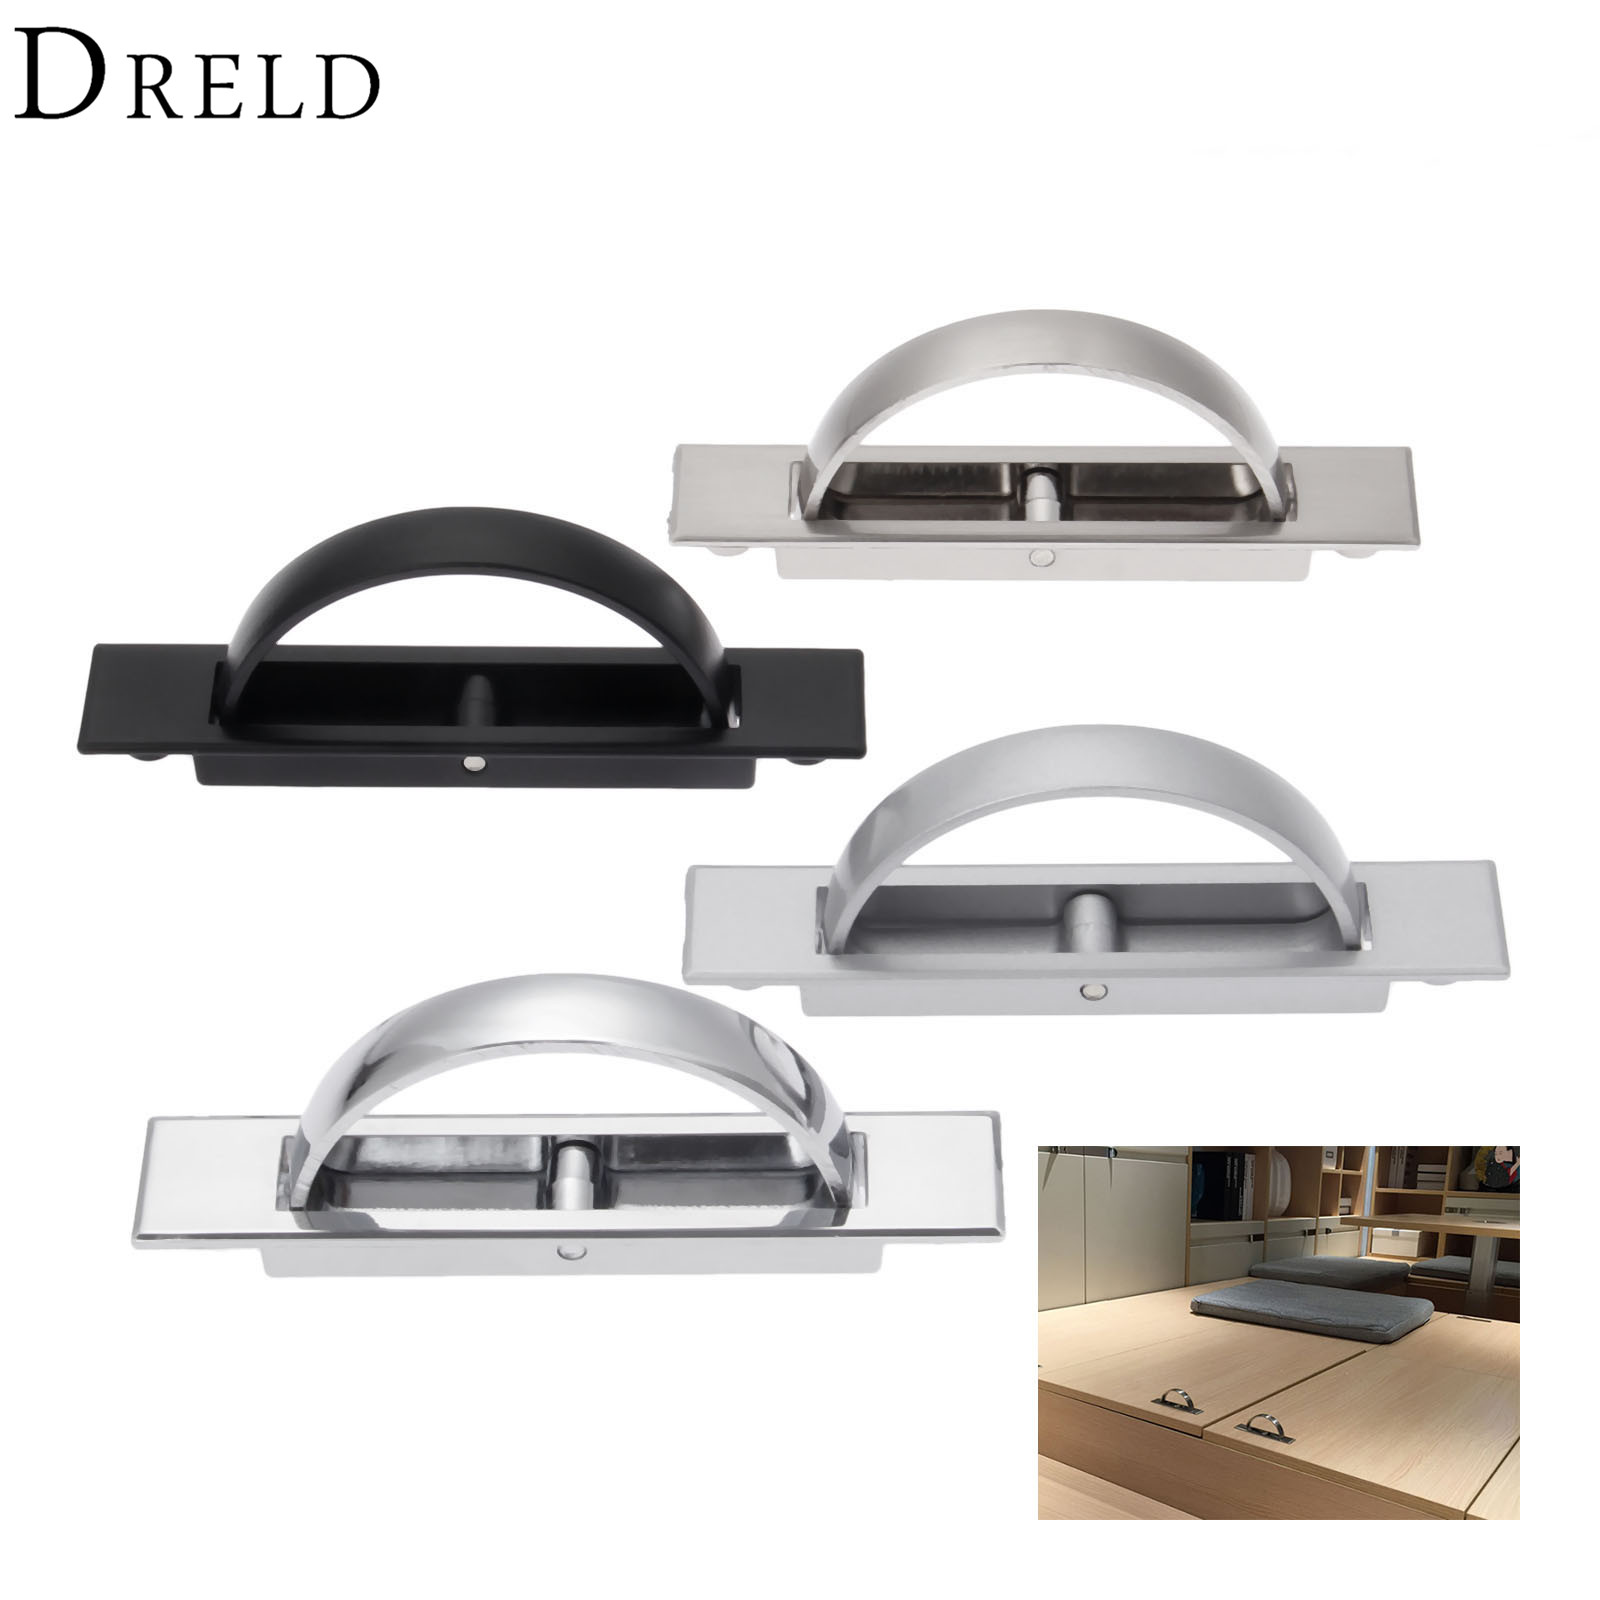 DRELD Hidden Door Furniture Handles Zinc Alloy Recessed Flush Pull Cover Cabinet Cabinet Knobs and Handles Furniture Hardware